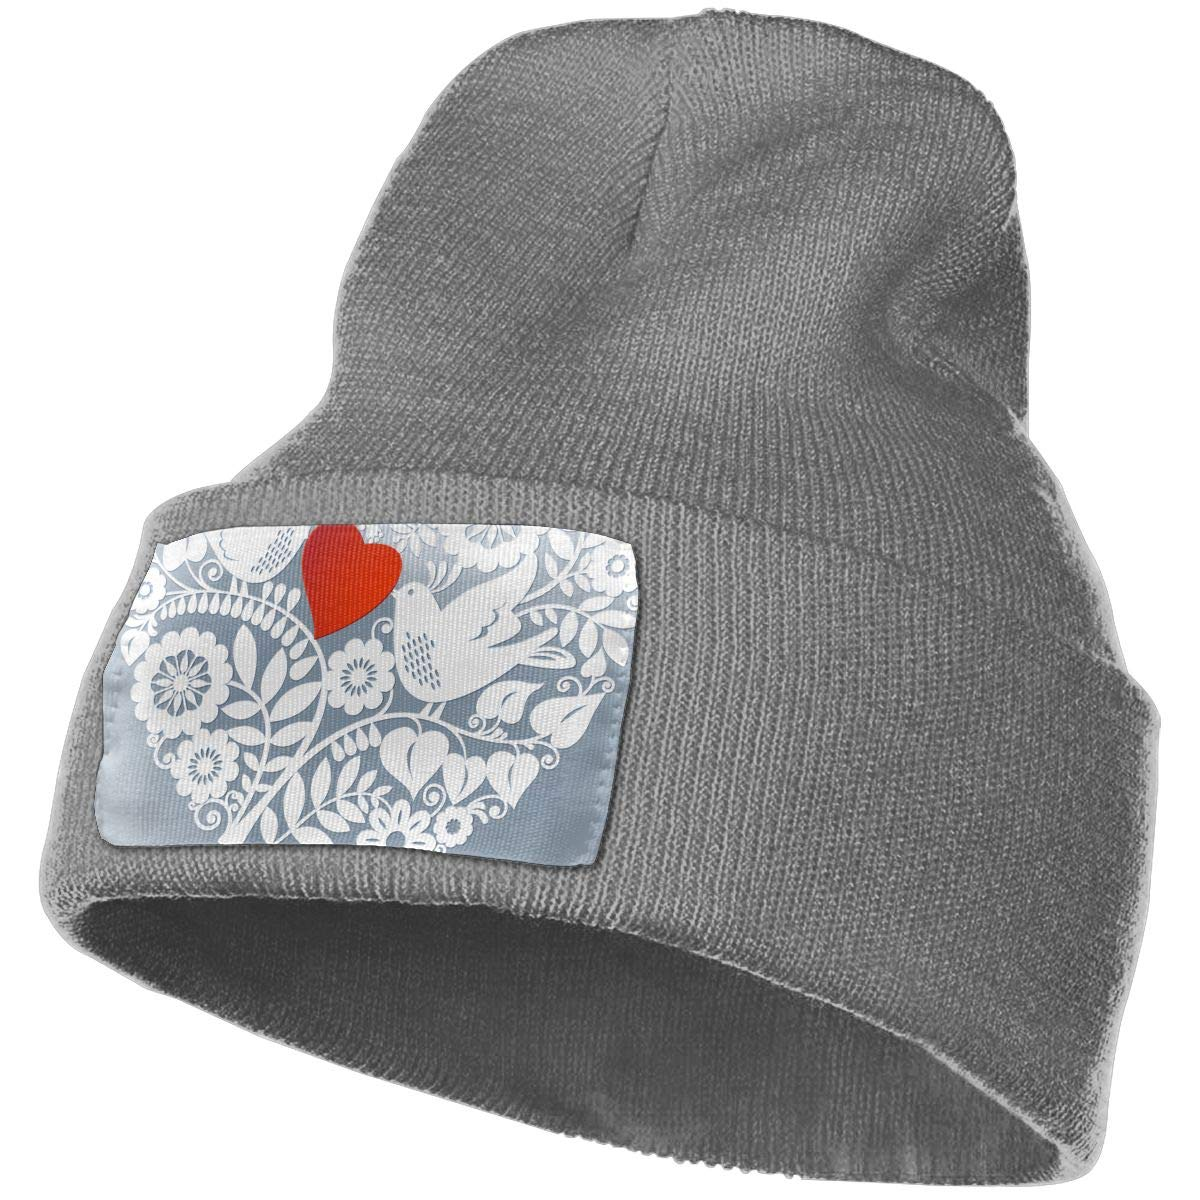 Two Loving Birds are Beautiful Lace Unisex Fashion Knitted Hat Luxury Hip-Hop Cap